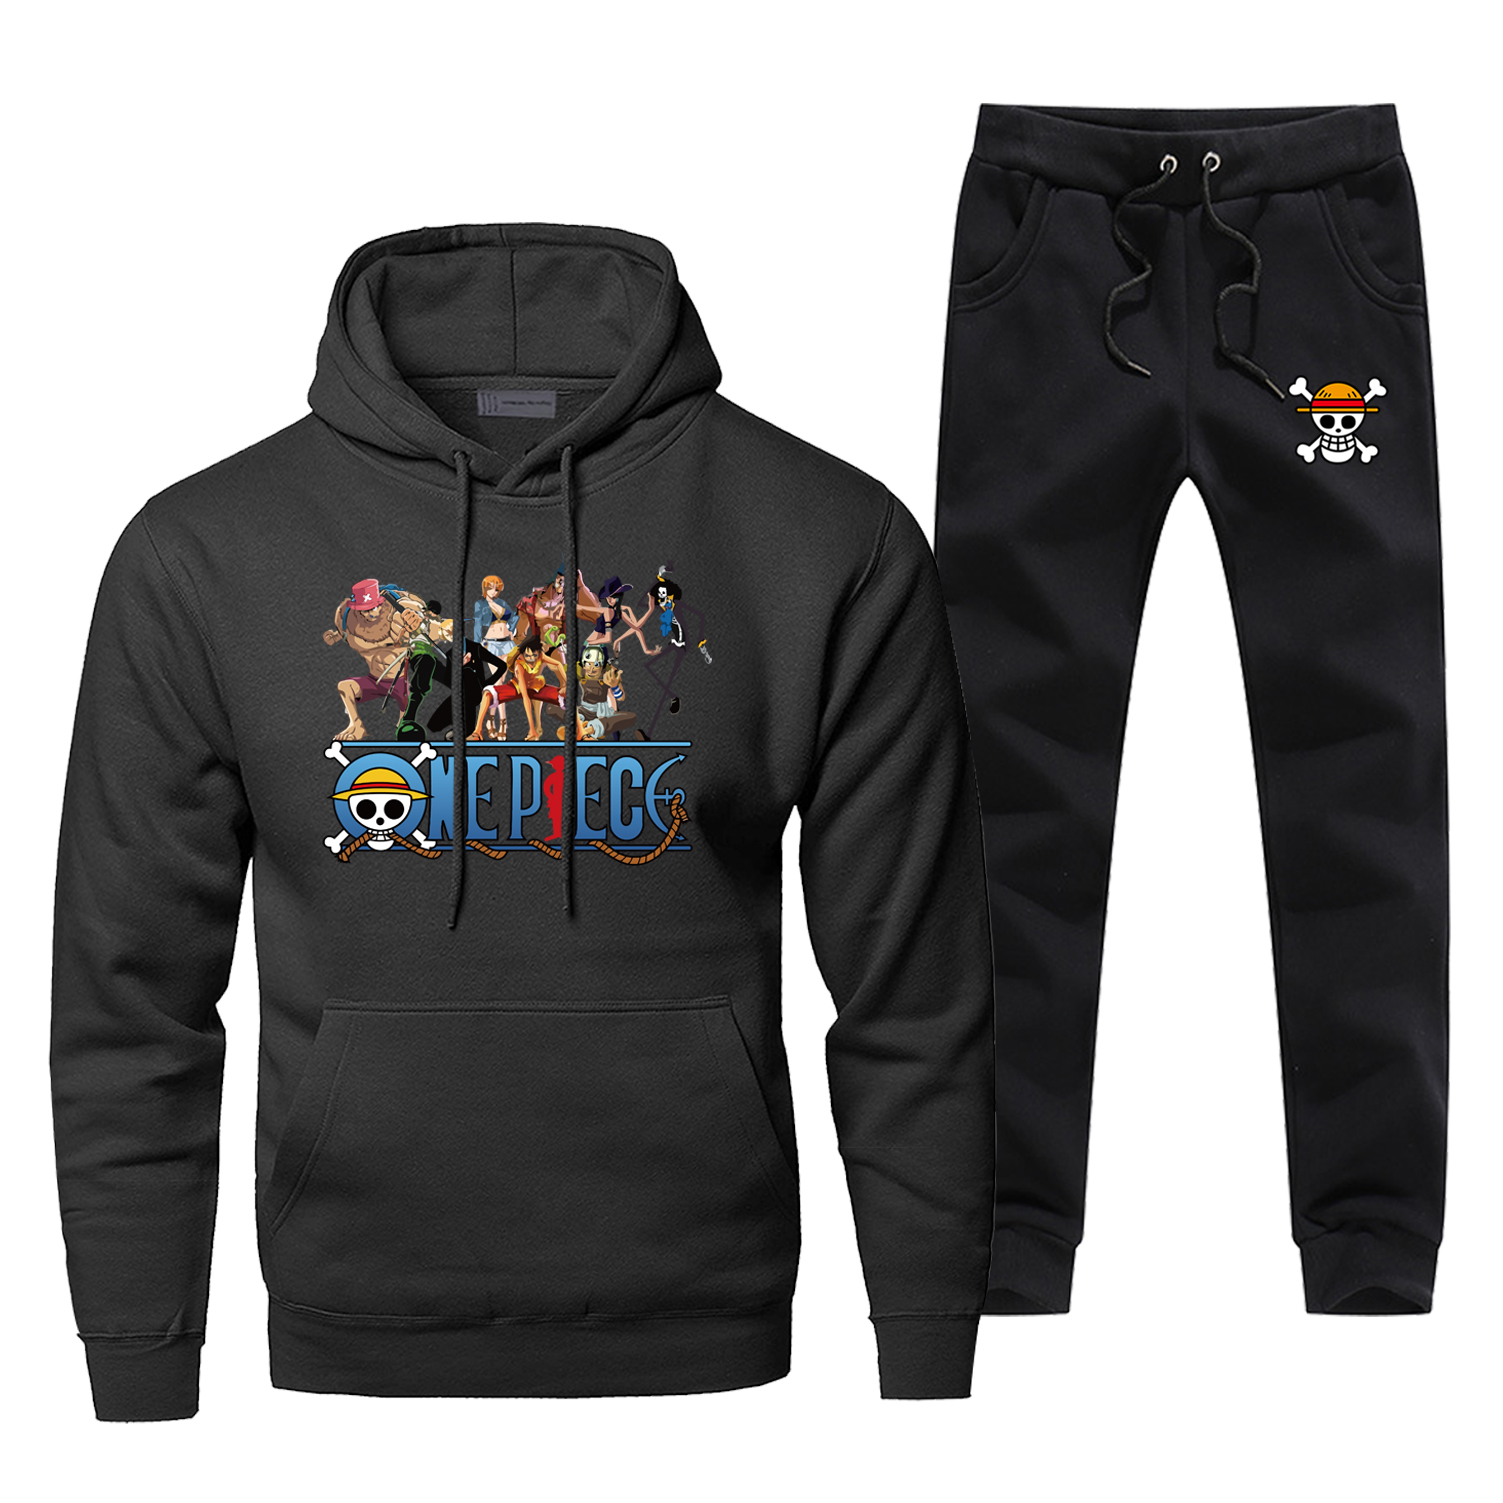 One Piece Winter Autumn Men's Full Suit Tracksuit Luffy Fashion Harajuku Pants Sweatshirt Japan Anime Casual Zoro Warm Male Set